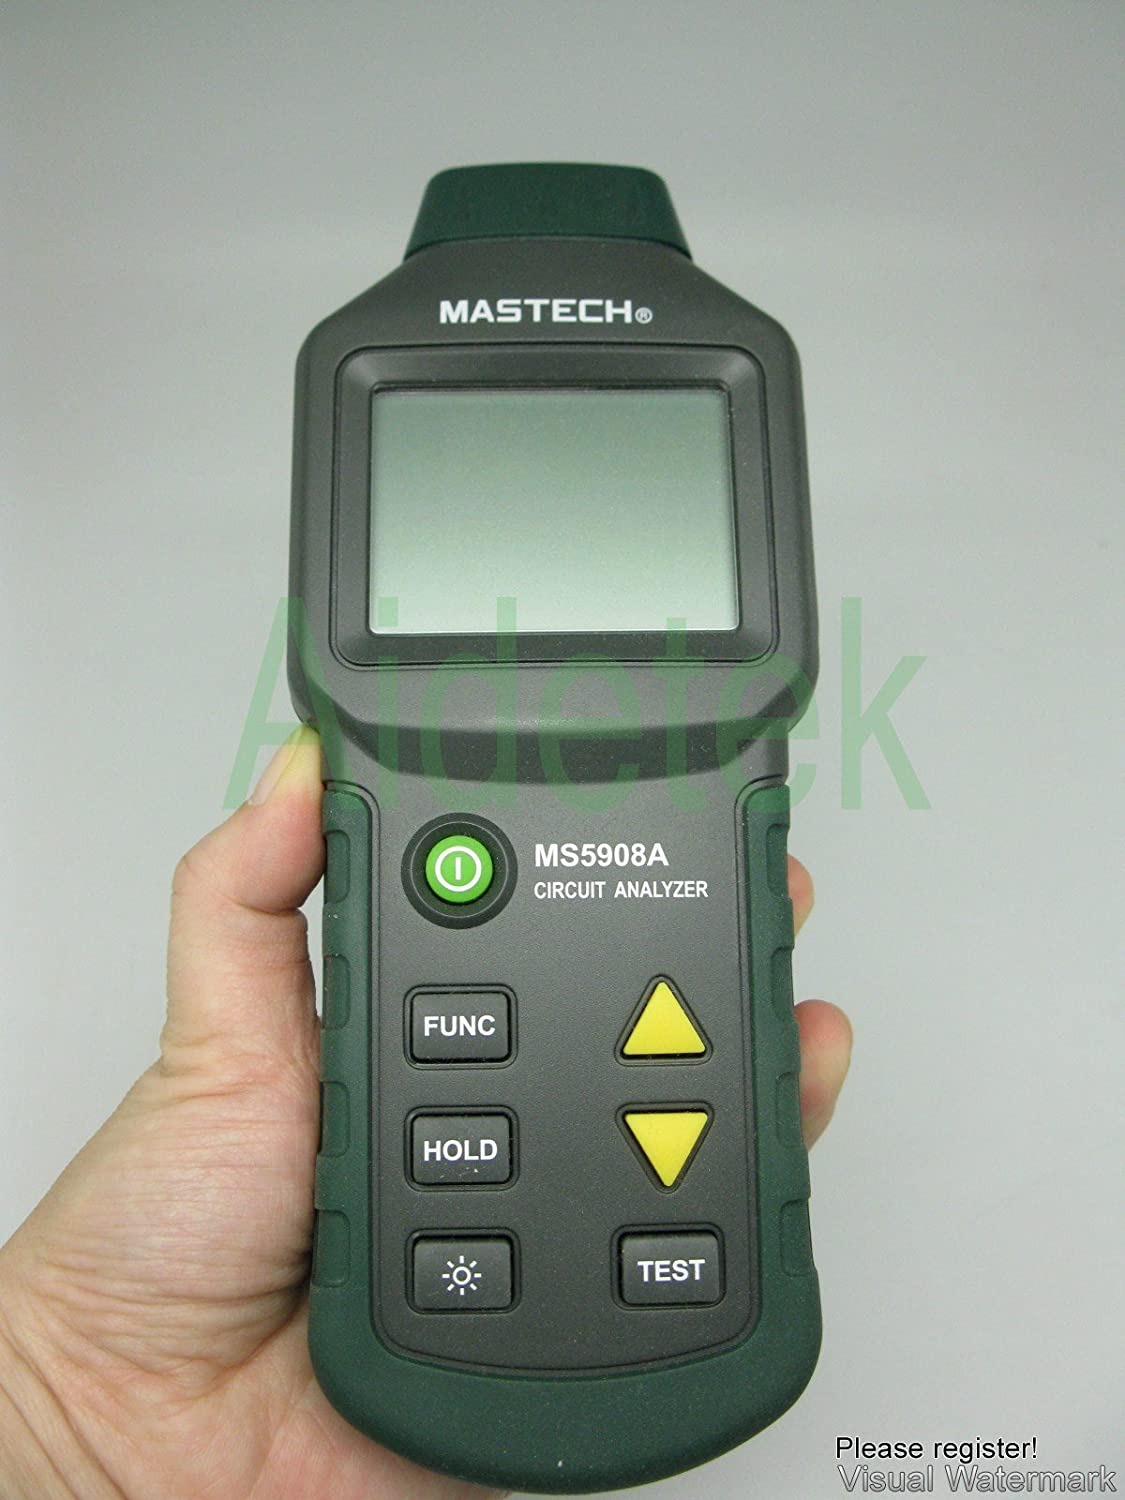 New Ms5908 T Rms Voltage Gfci Rcd Tester Circuit Analyzer Fit Extech Ct70 Ac Load Ideal Suretest 61 164cn Usa Ship W 1 Yr Warranty Multi Testers